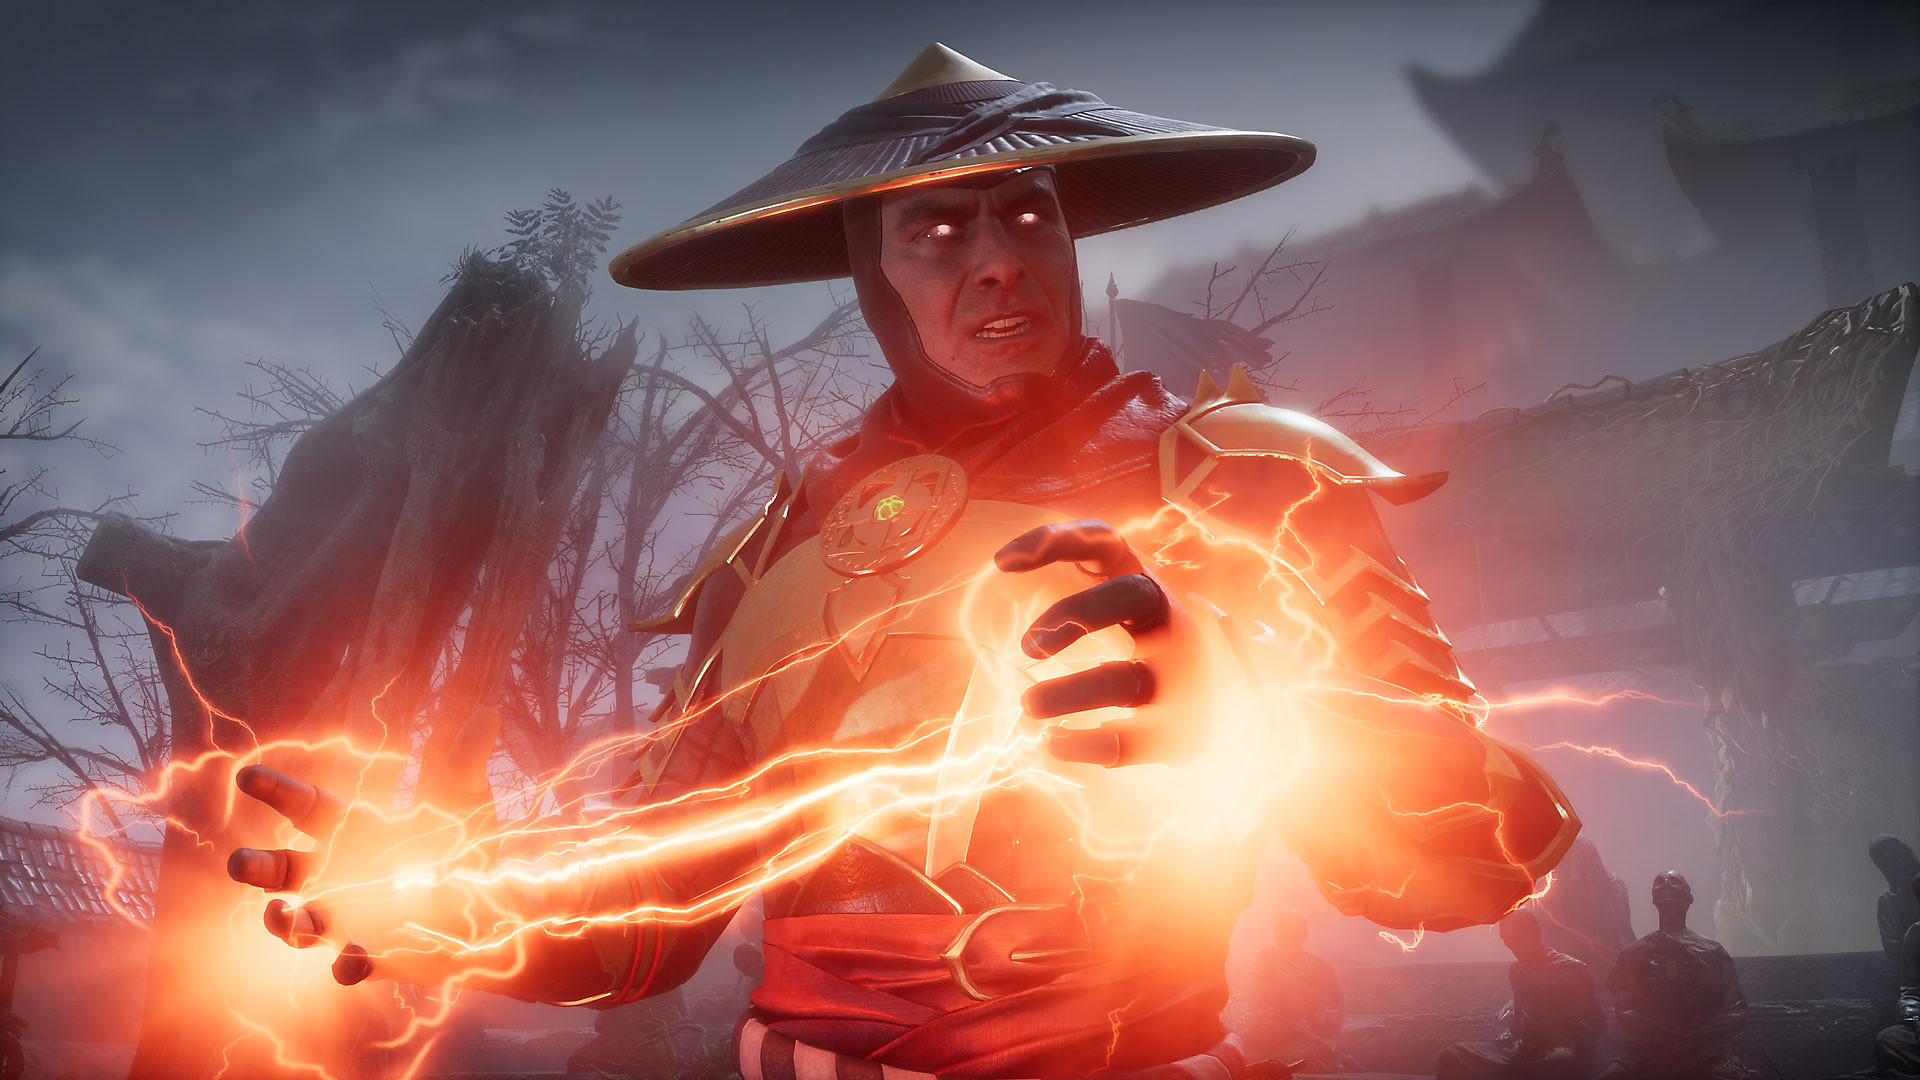 Mortal Kombat 11 - Game Features